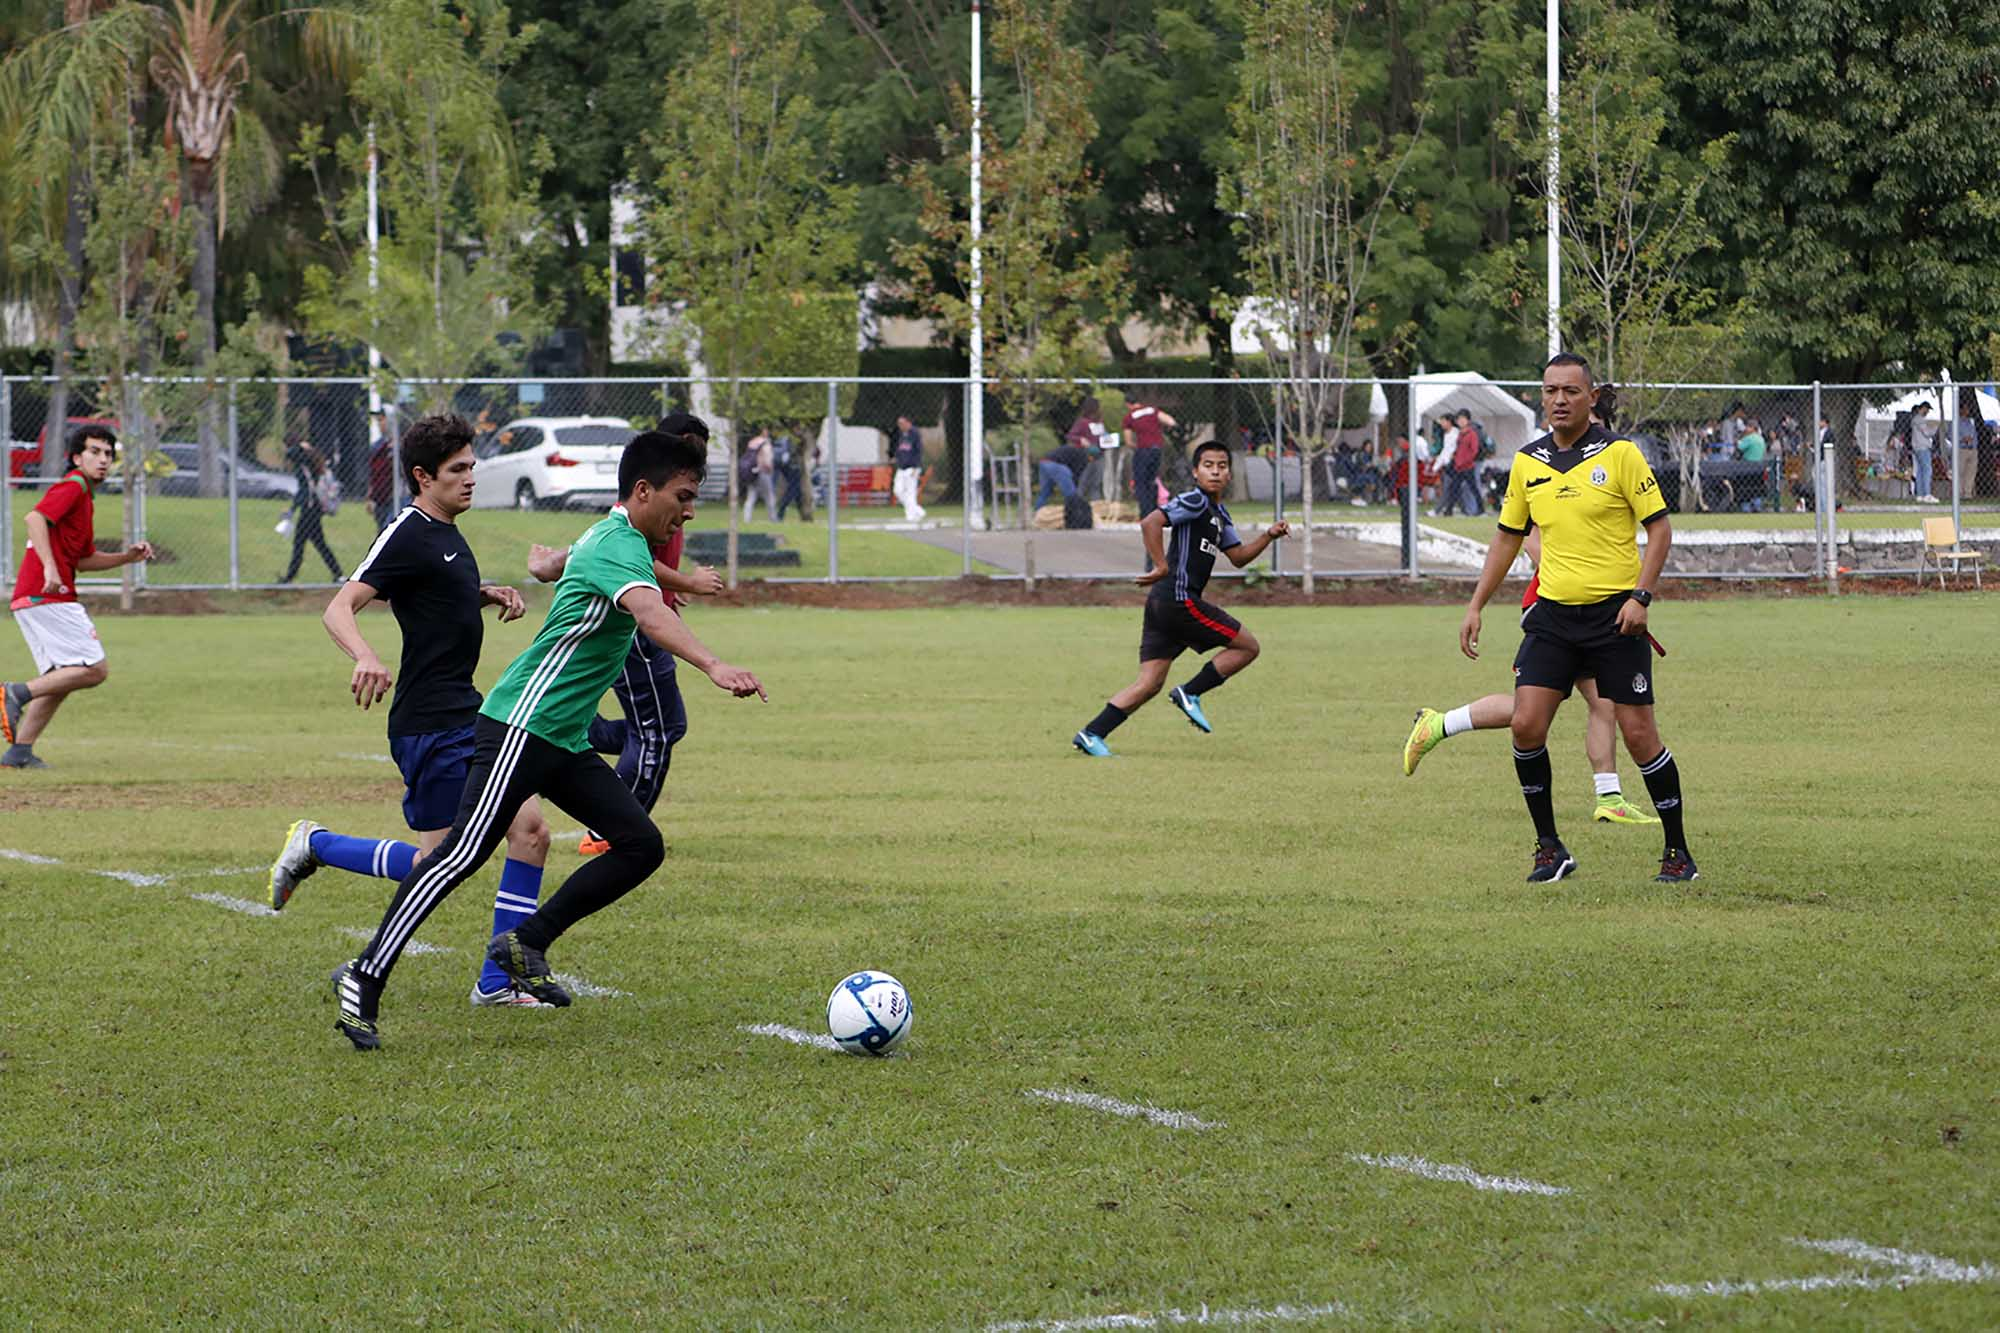 Torneo interfacultades 291019